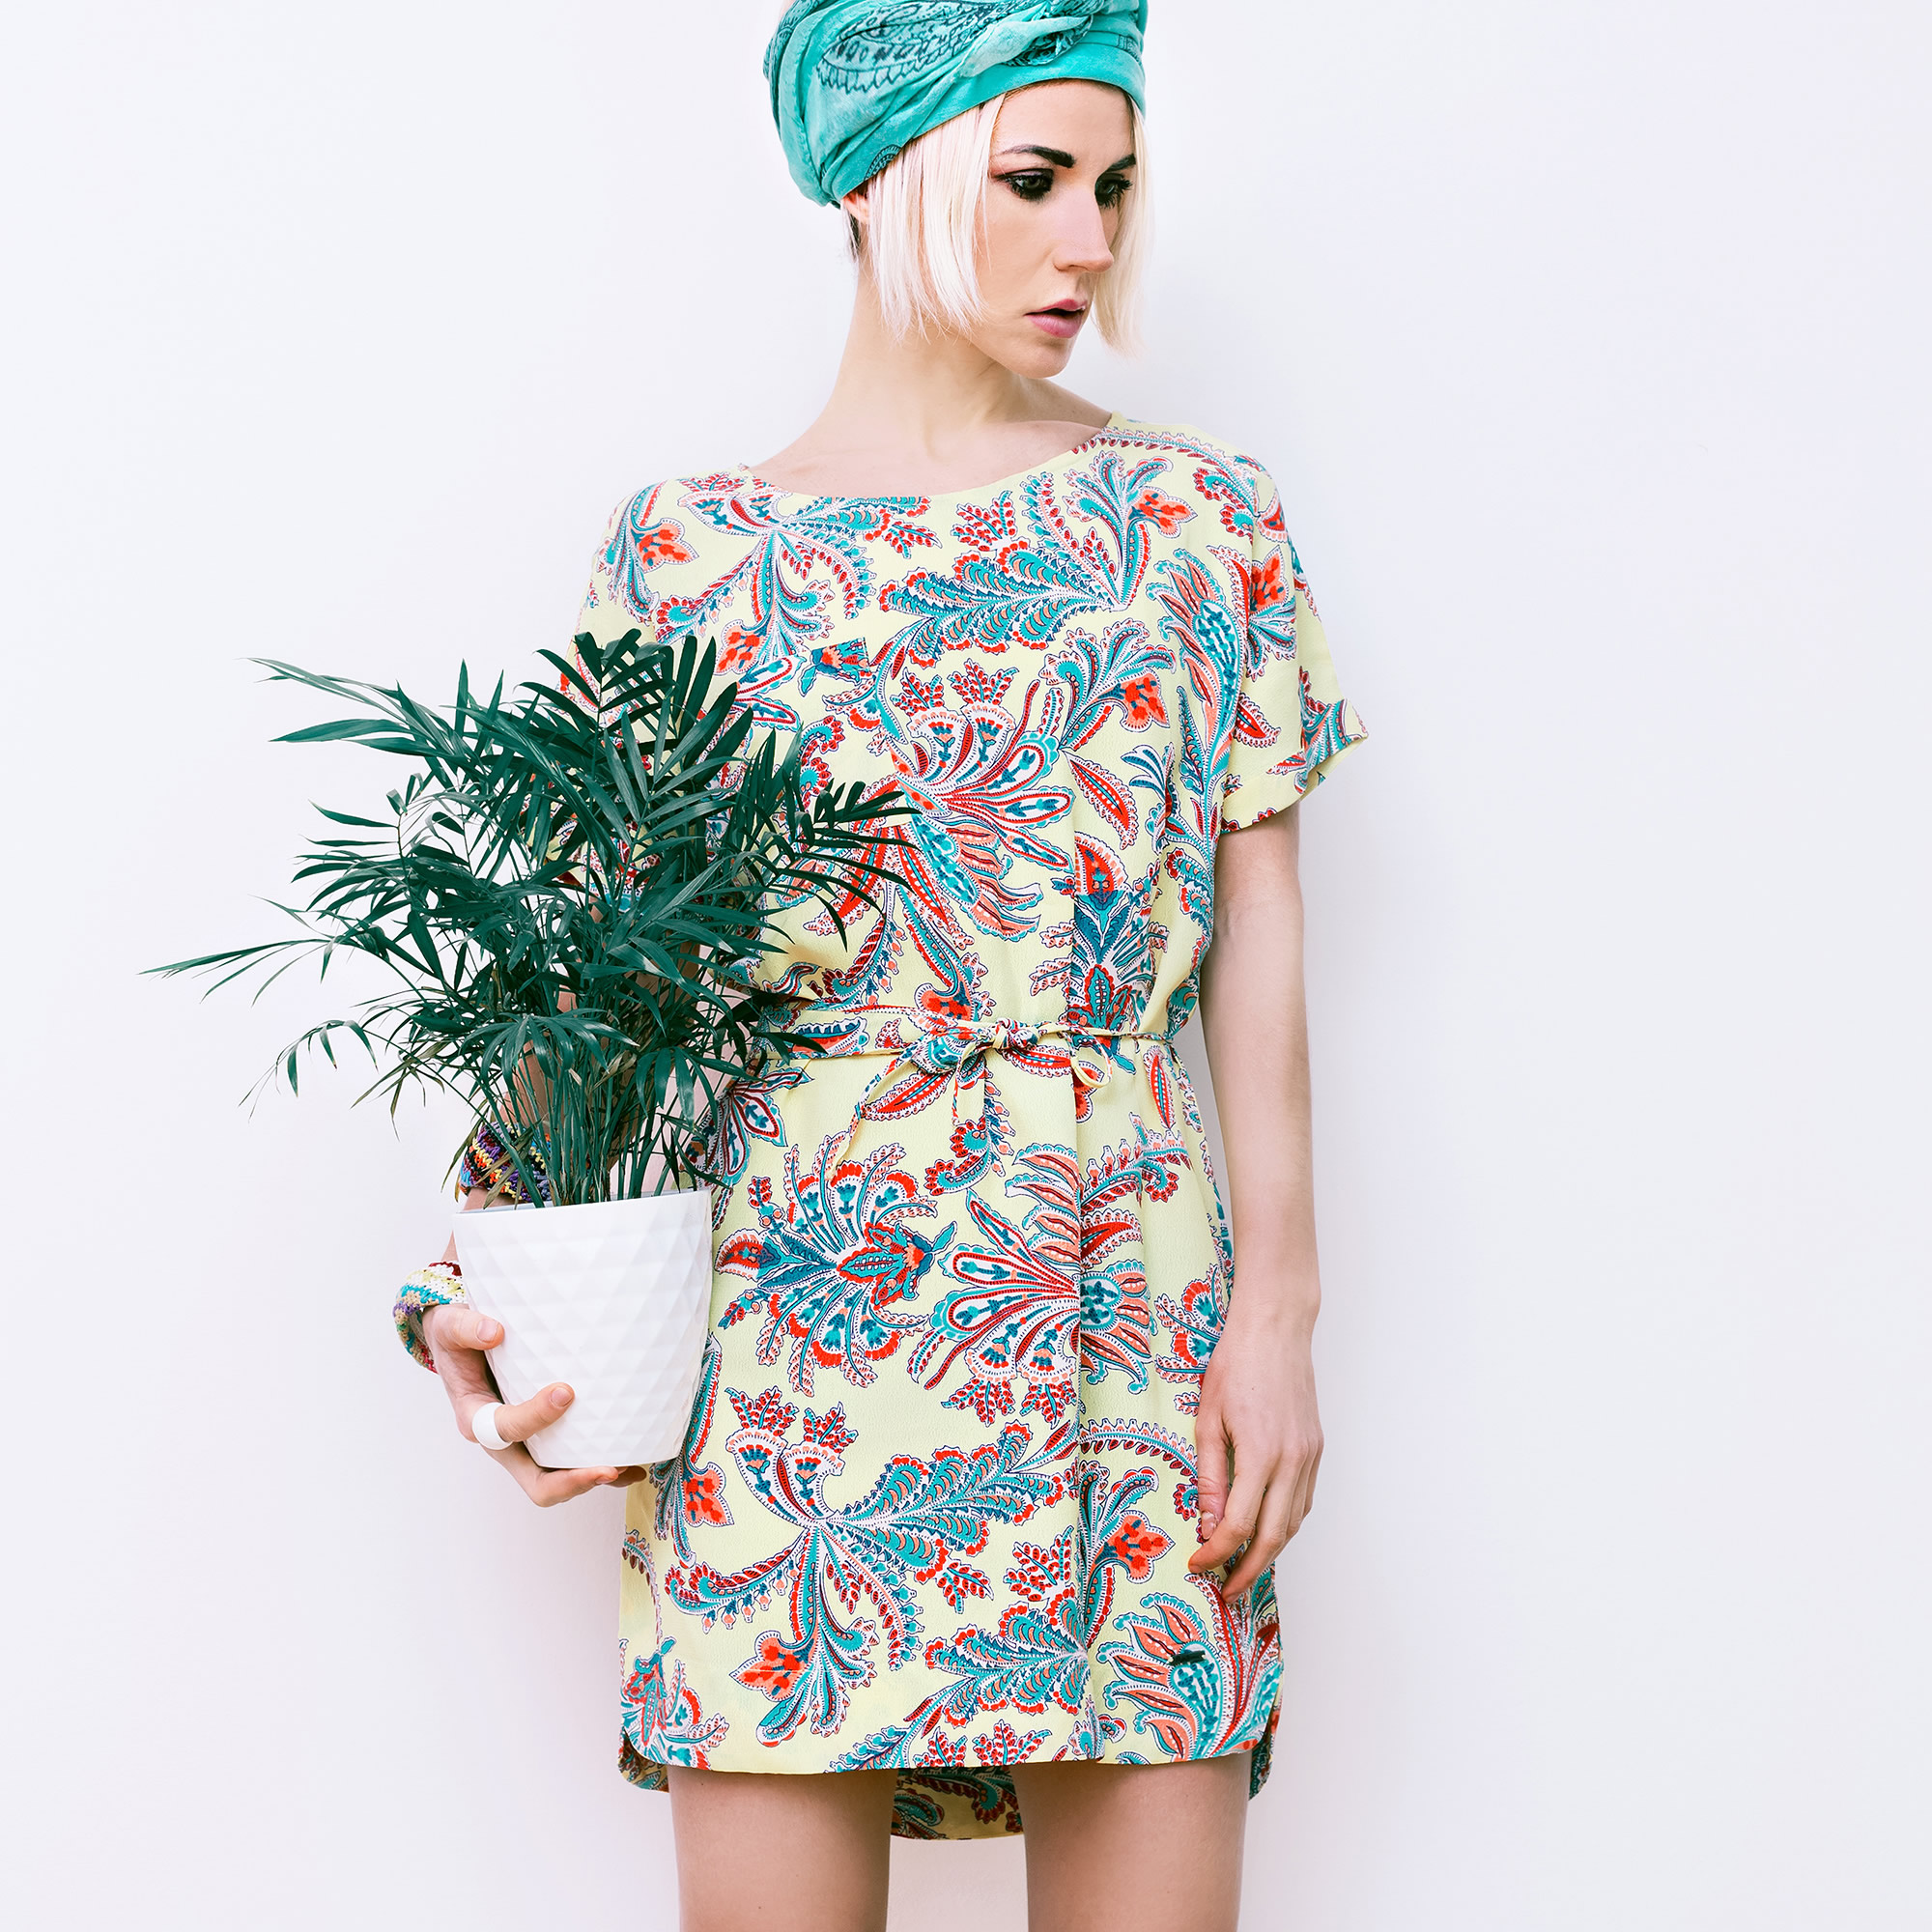 girl in multicolored dress holding a flower in a pot